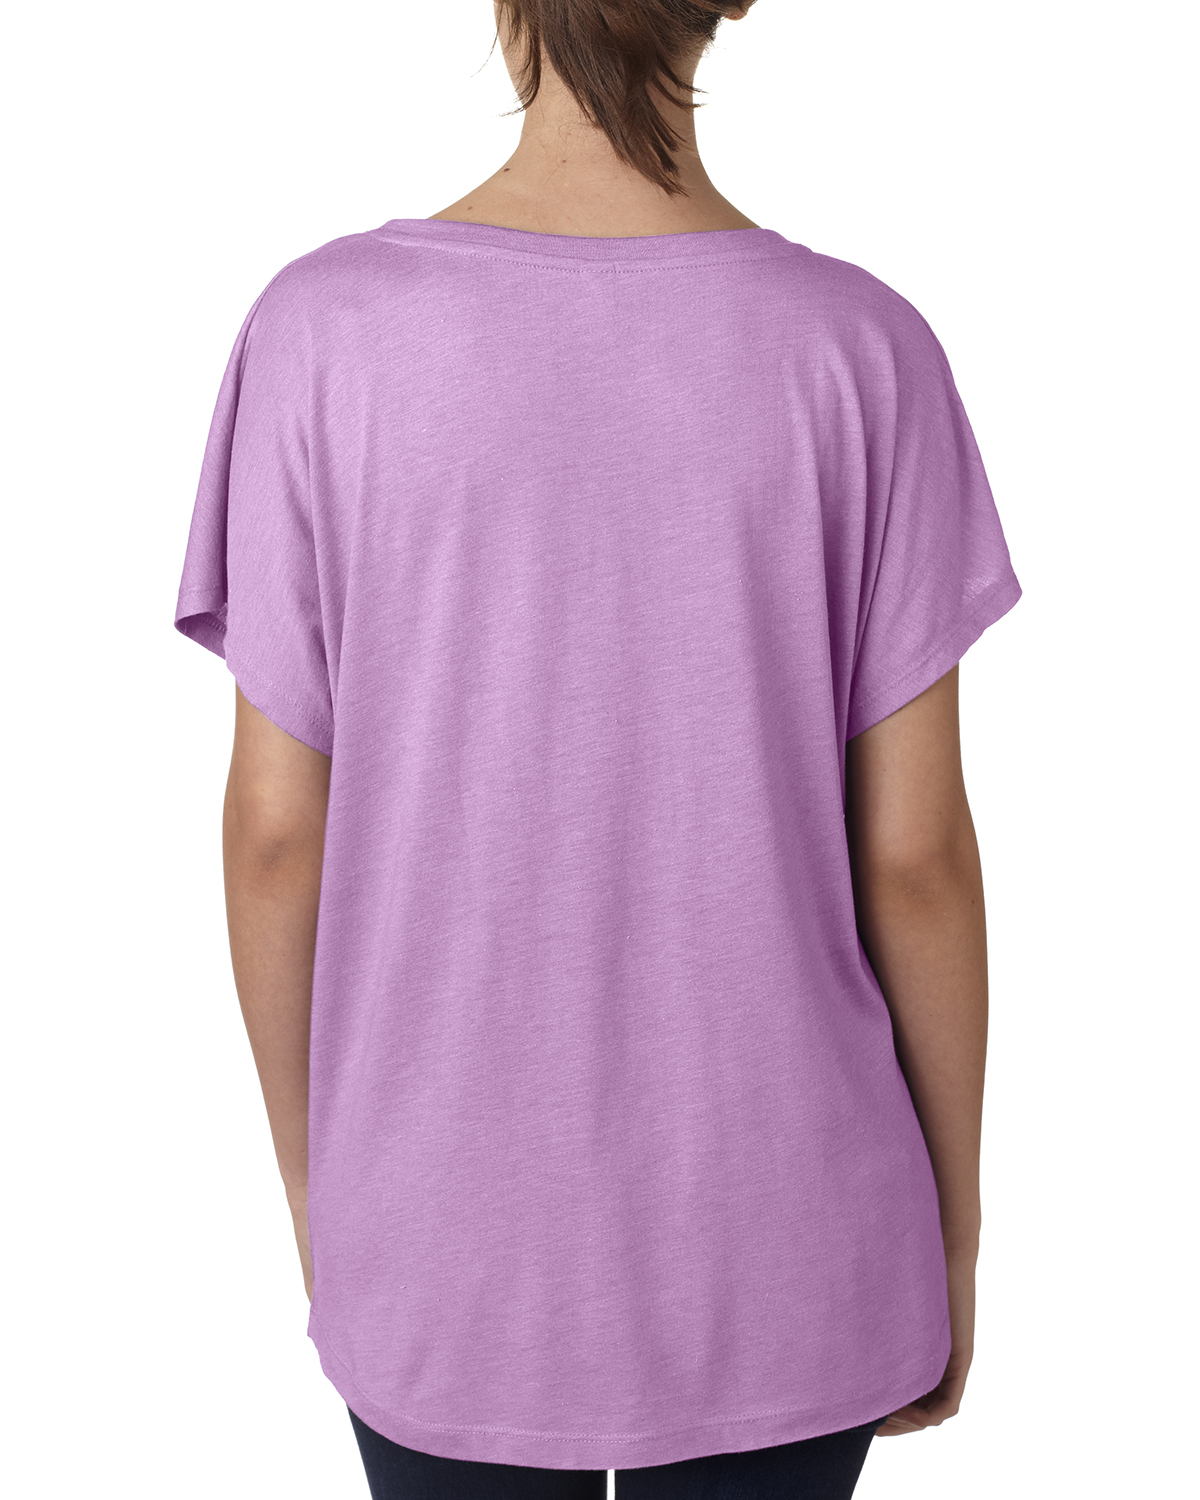 NEW-Next-Level-Junior-Fit-Triblend-Dolman-Sleeve-Relexed-Fit-T-Shirt-B-6760 thumbnail 30